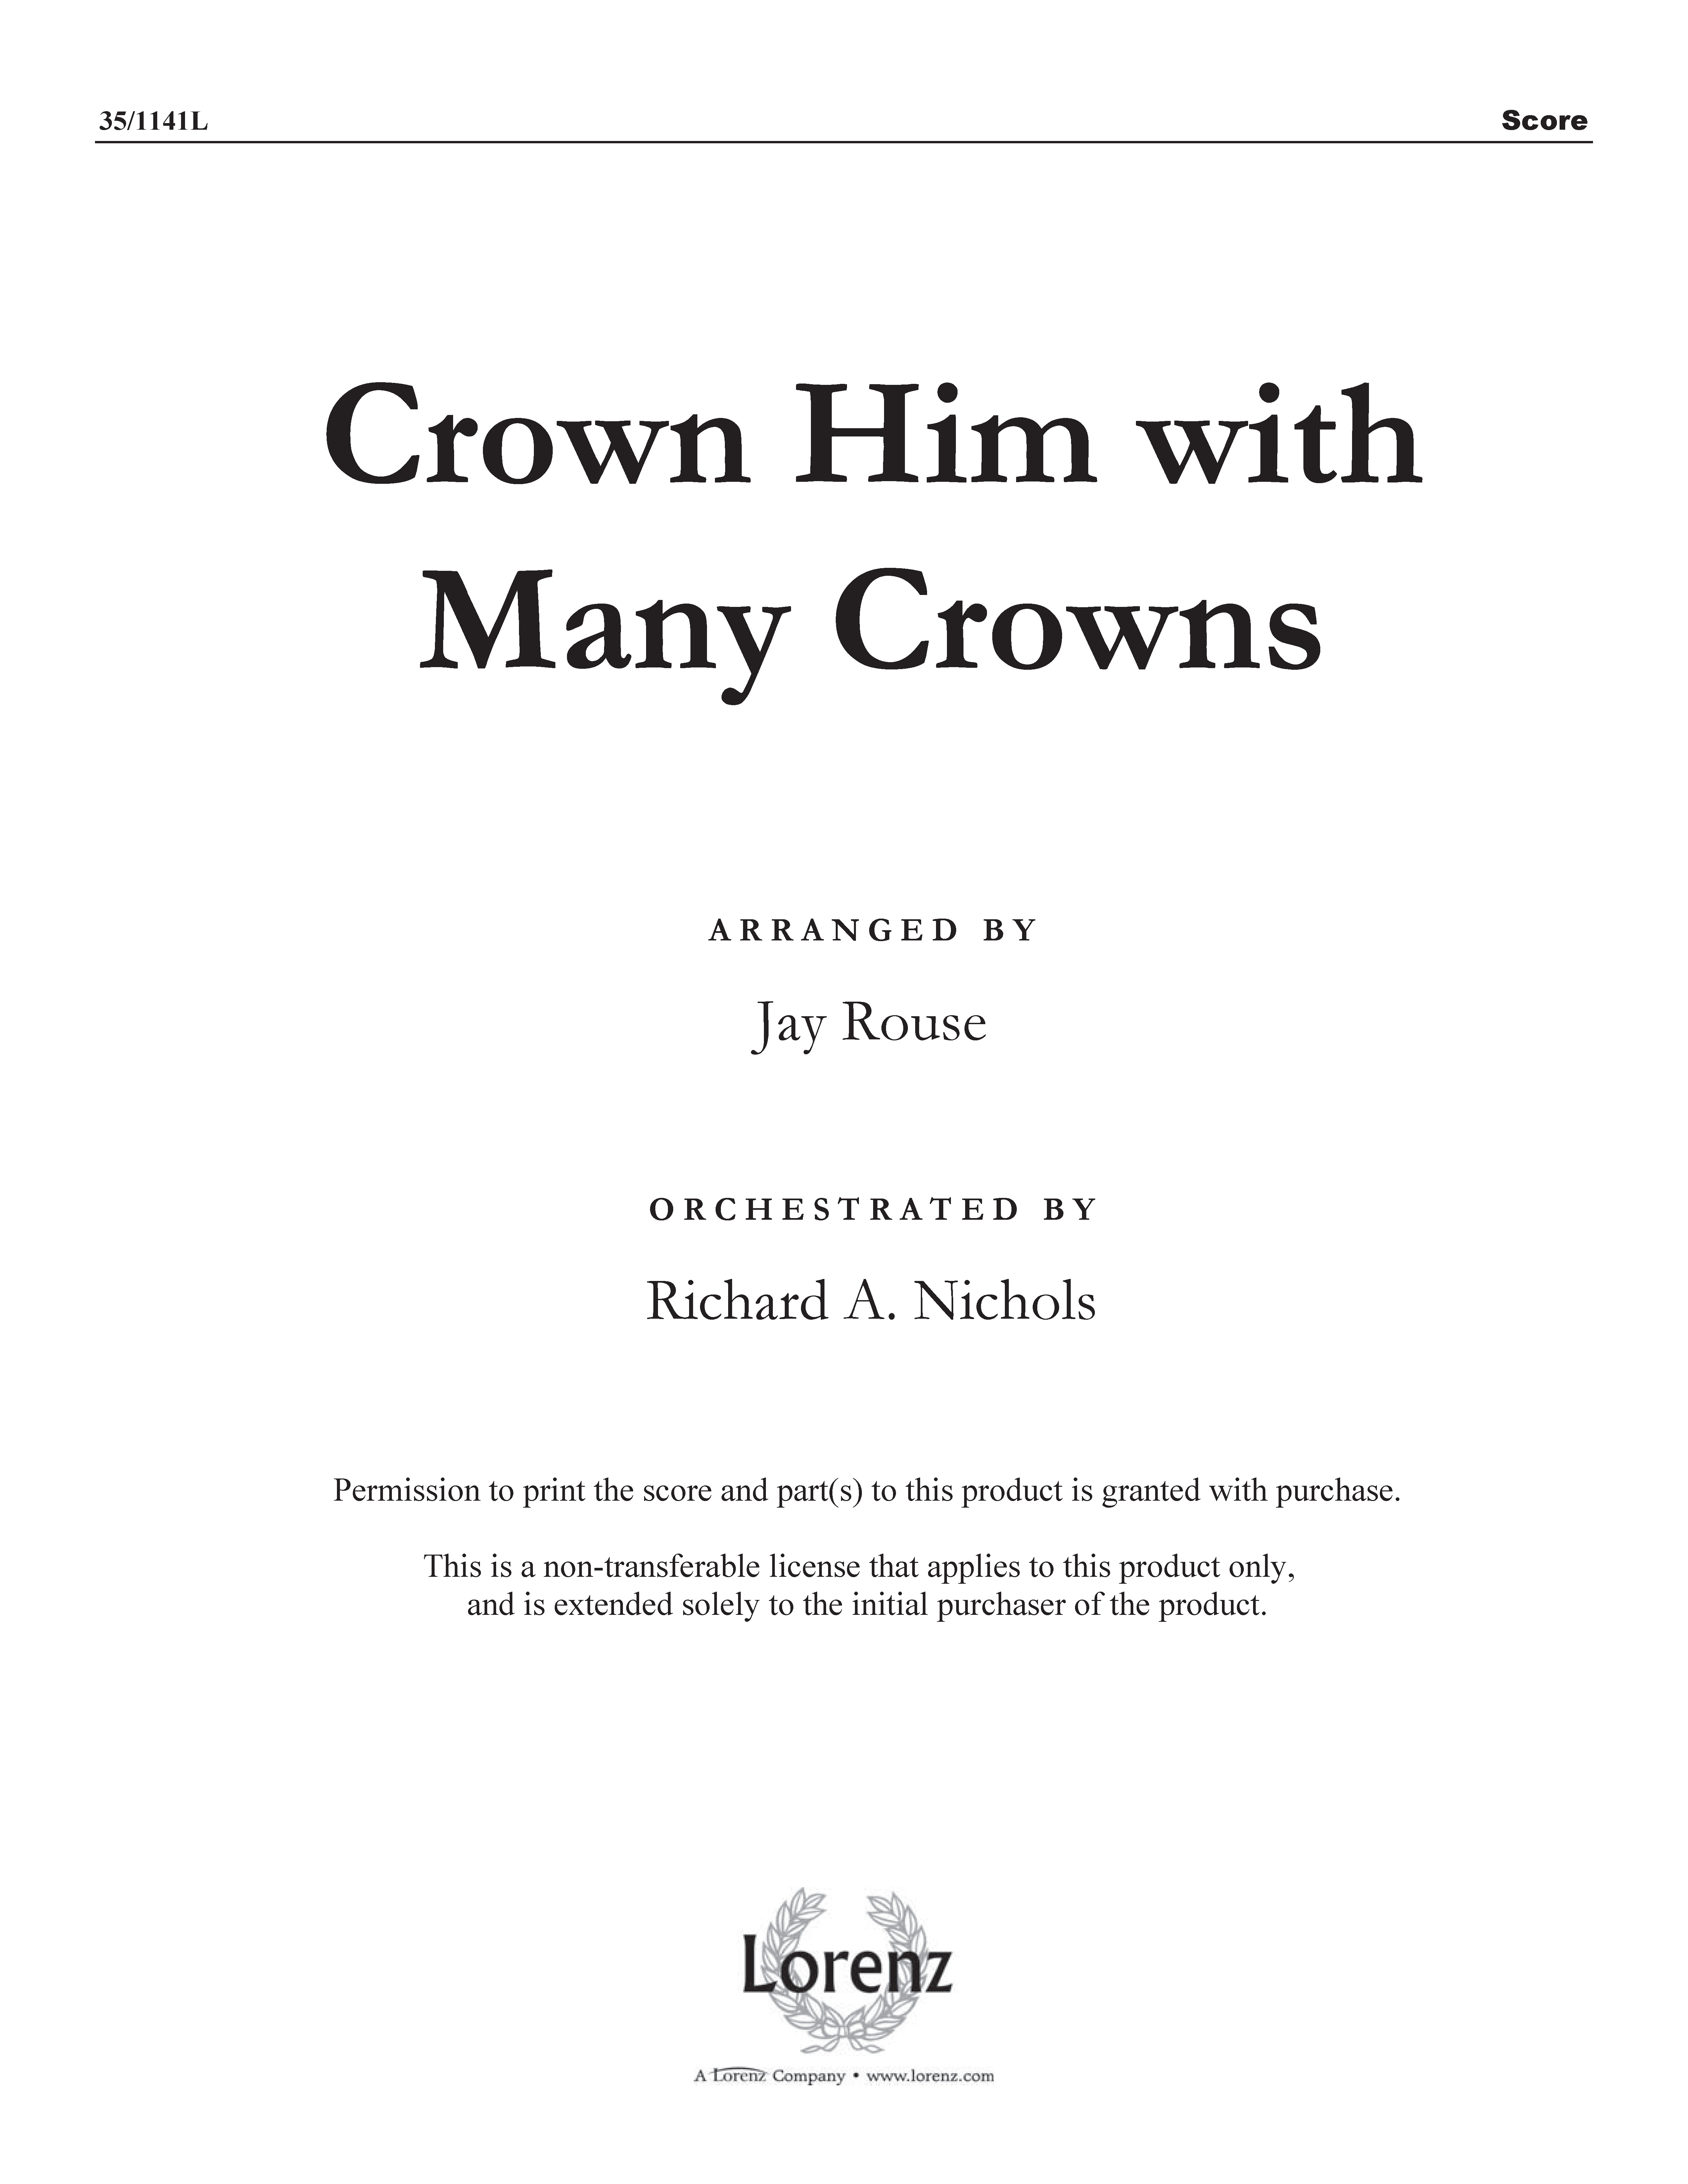 Crown Him with Many Crowns (Digital Delivery)